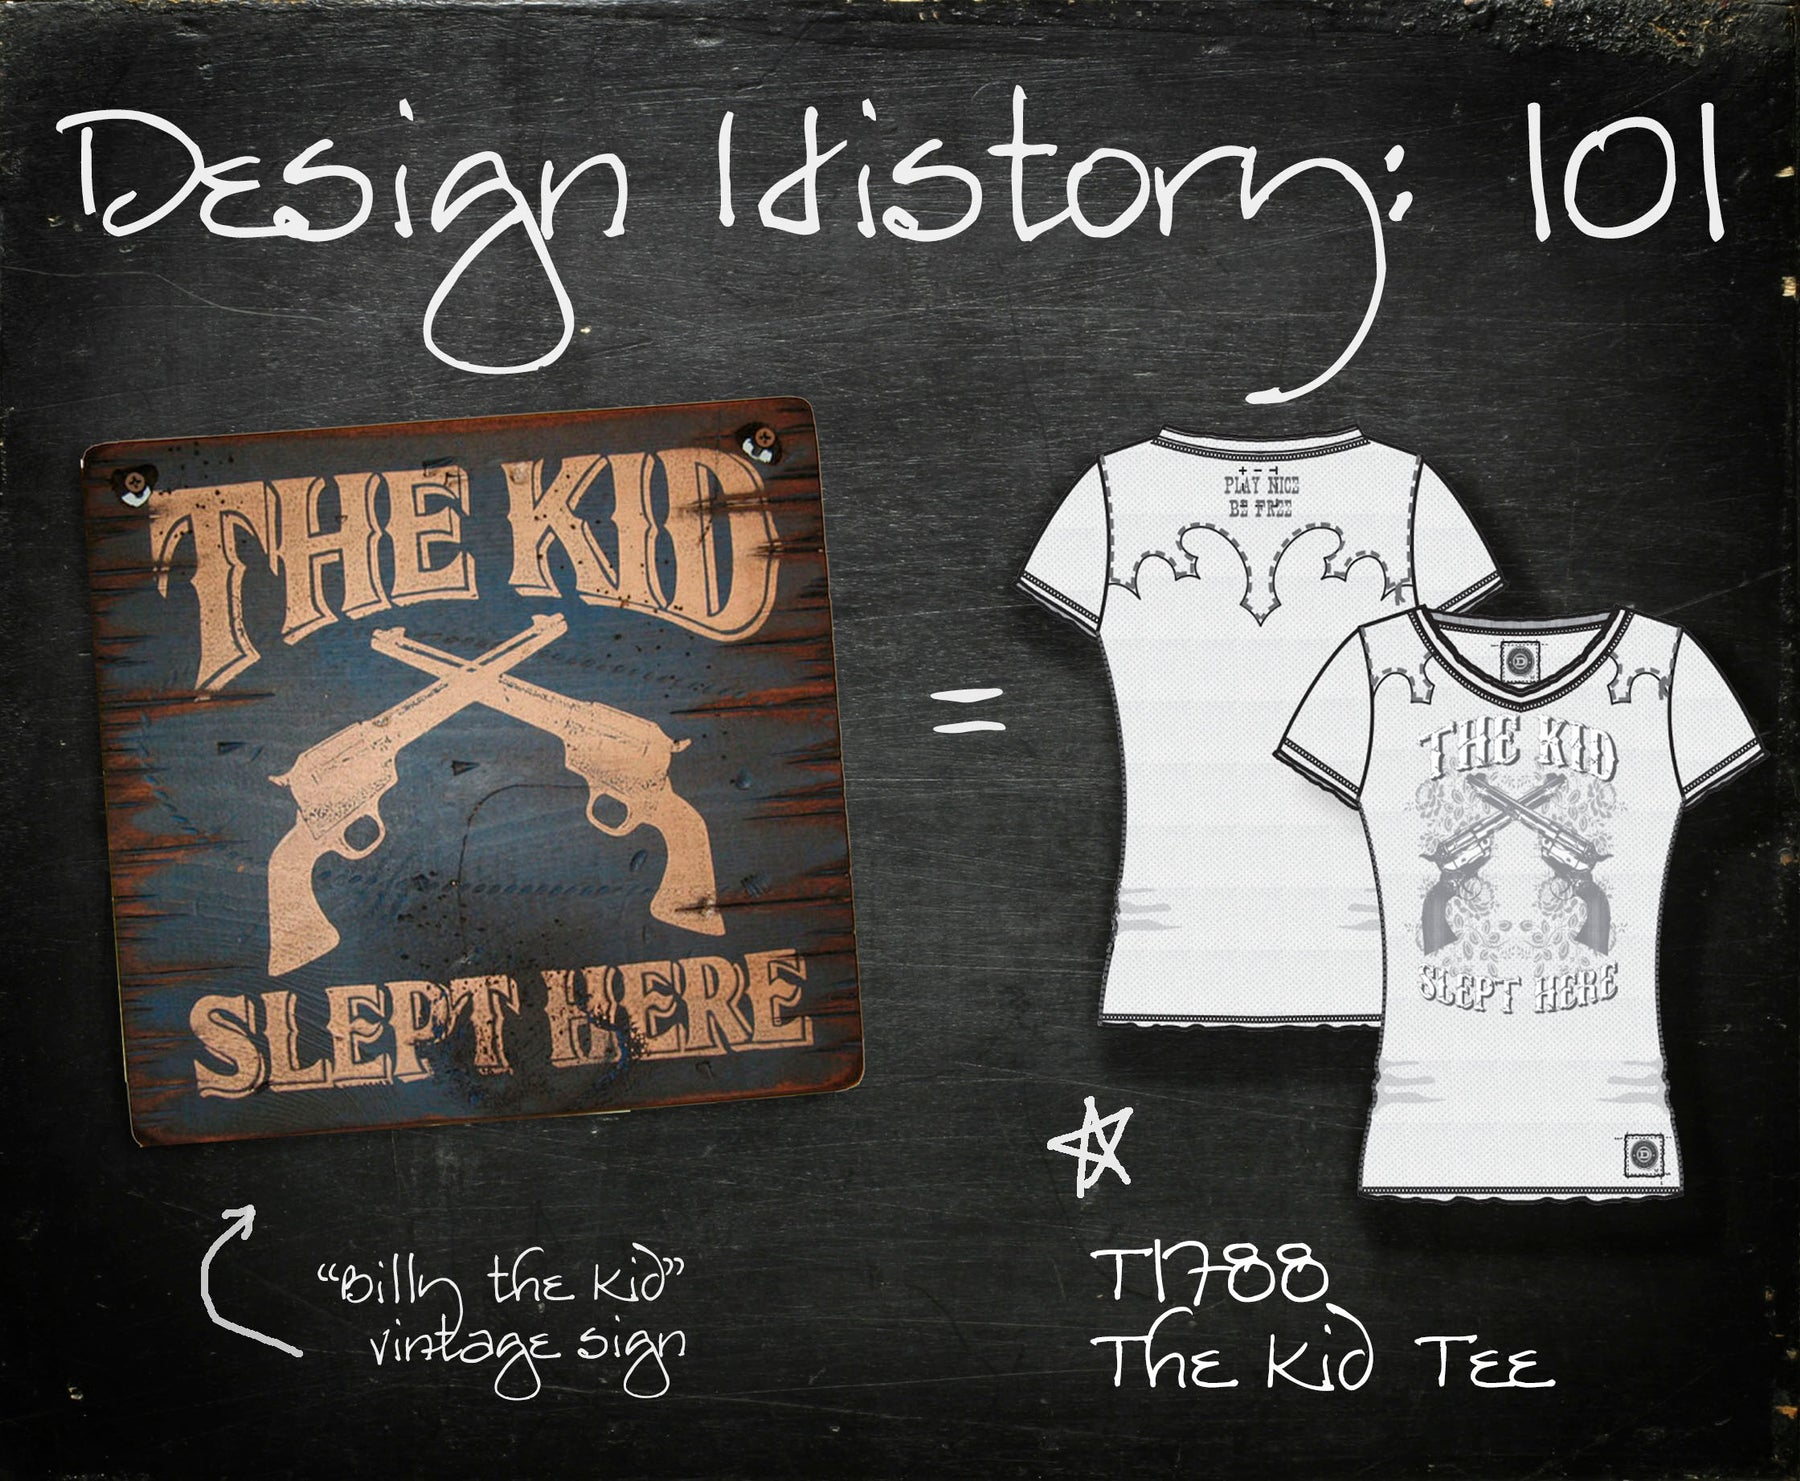 Design History 101: The Kid (Slept Here)